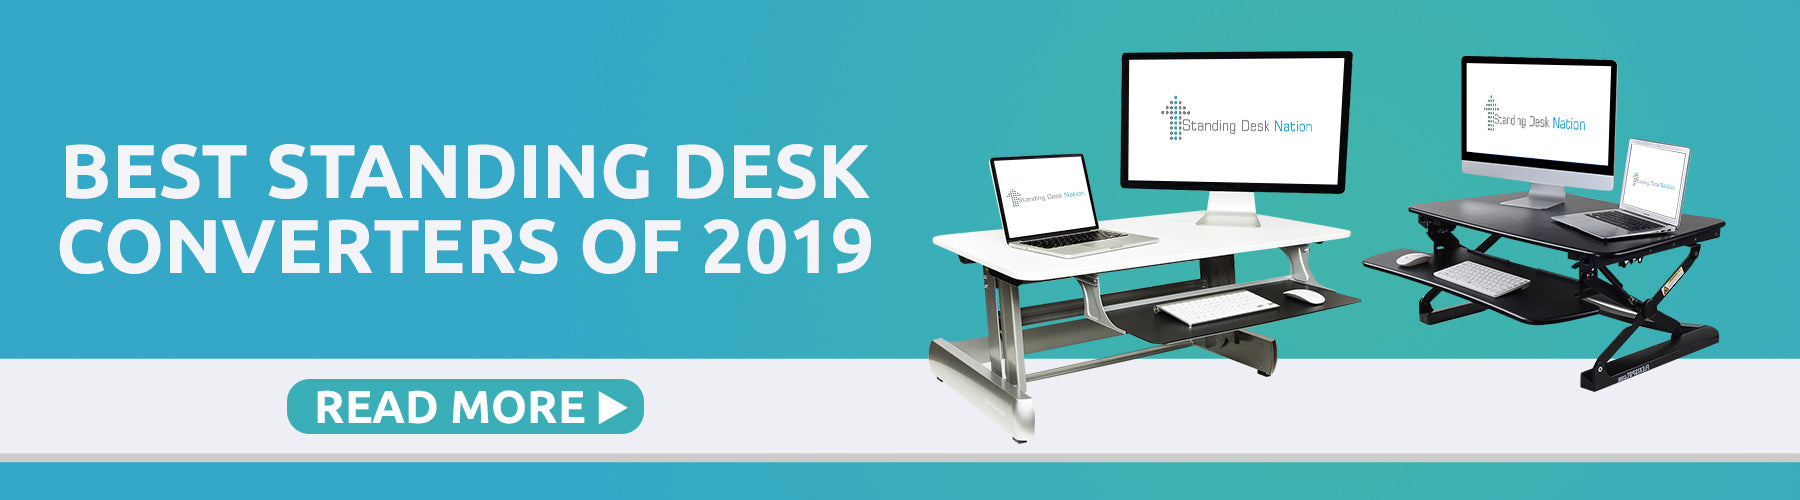 Best Standing Desk Converters of 2019 by Standing Desk Nation